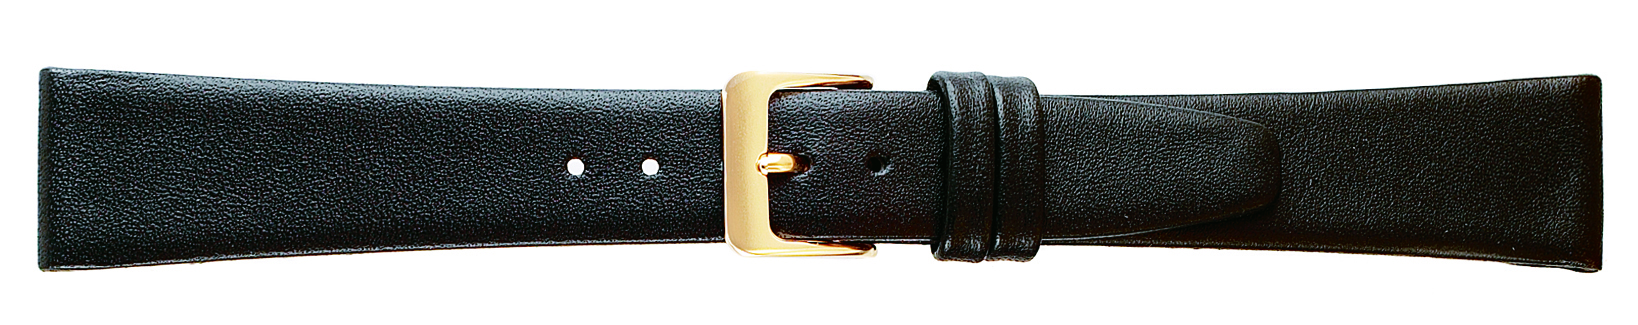 12MM Leather Band Black Smooth Calf Extra Long-0